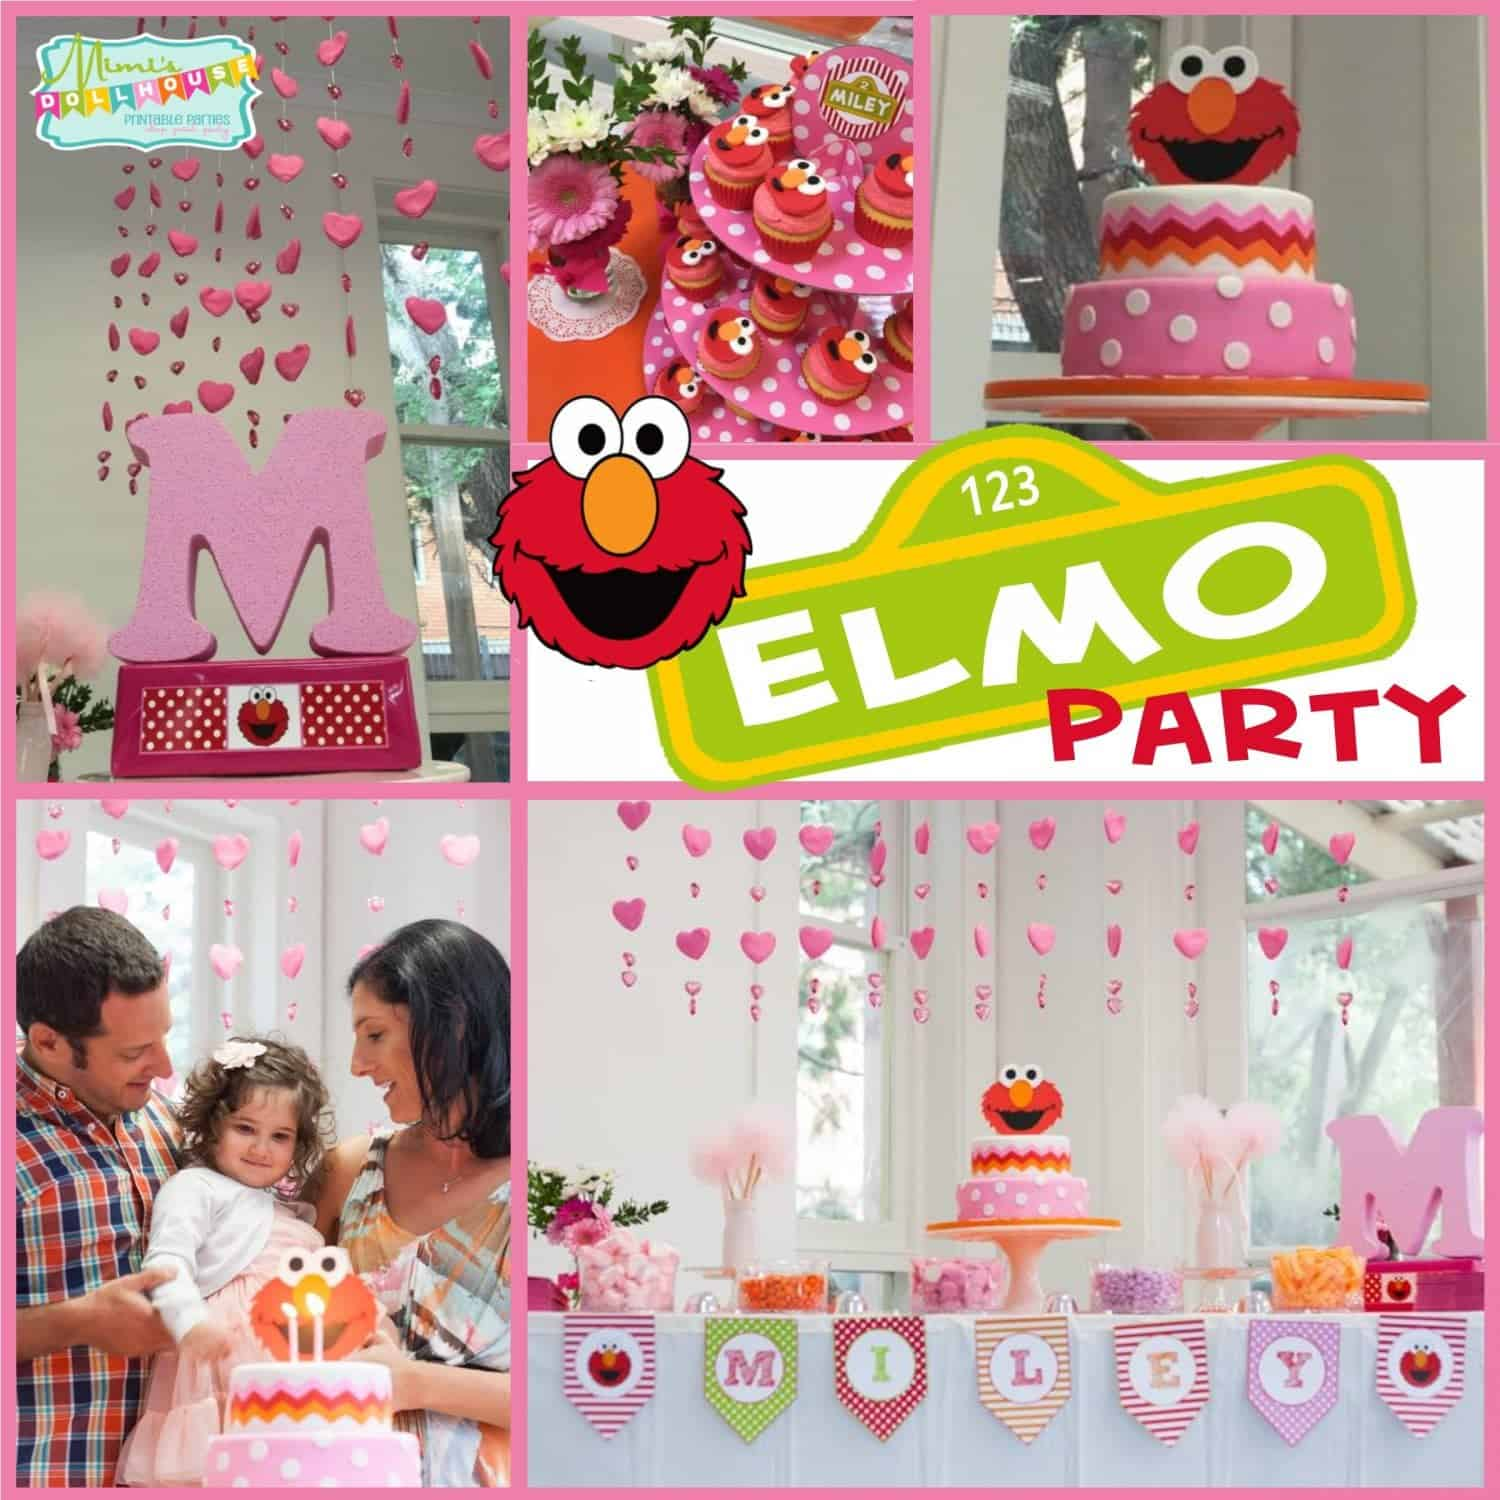 Elmo Party: Miley's Pretty Pink Elmo Party